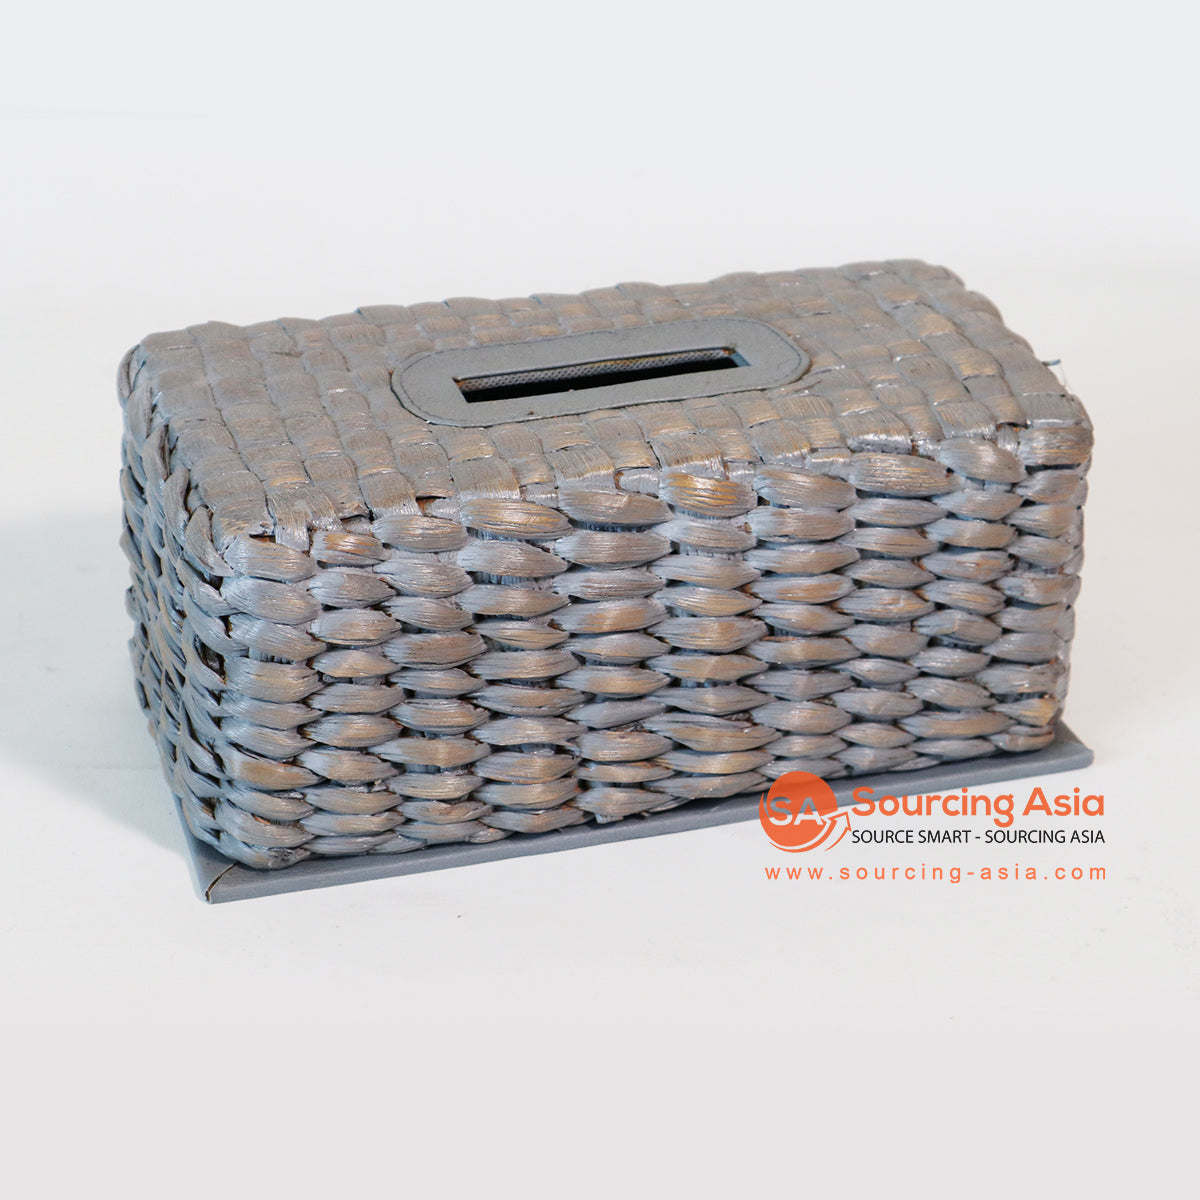 MTIC071-1 WATER HYACINTH TISSUE BOX